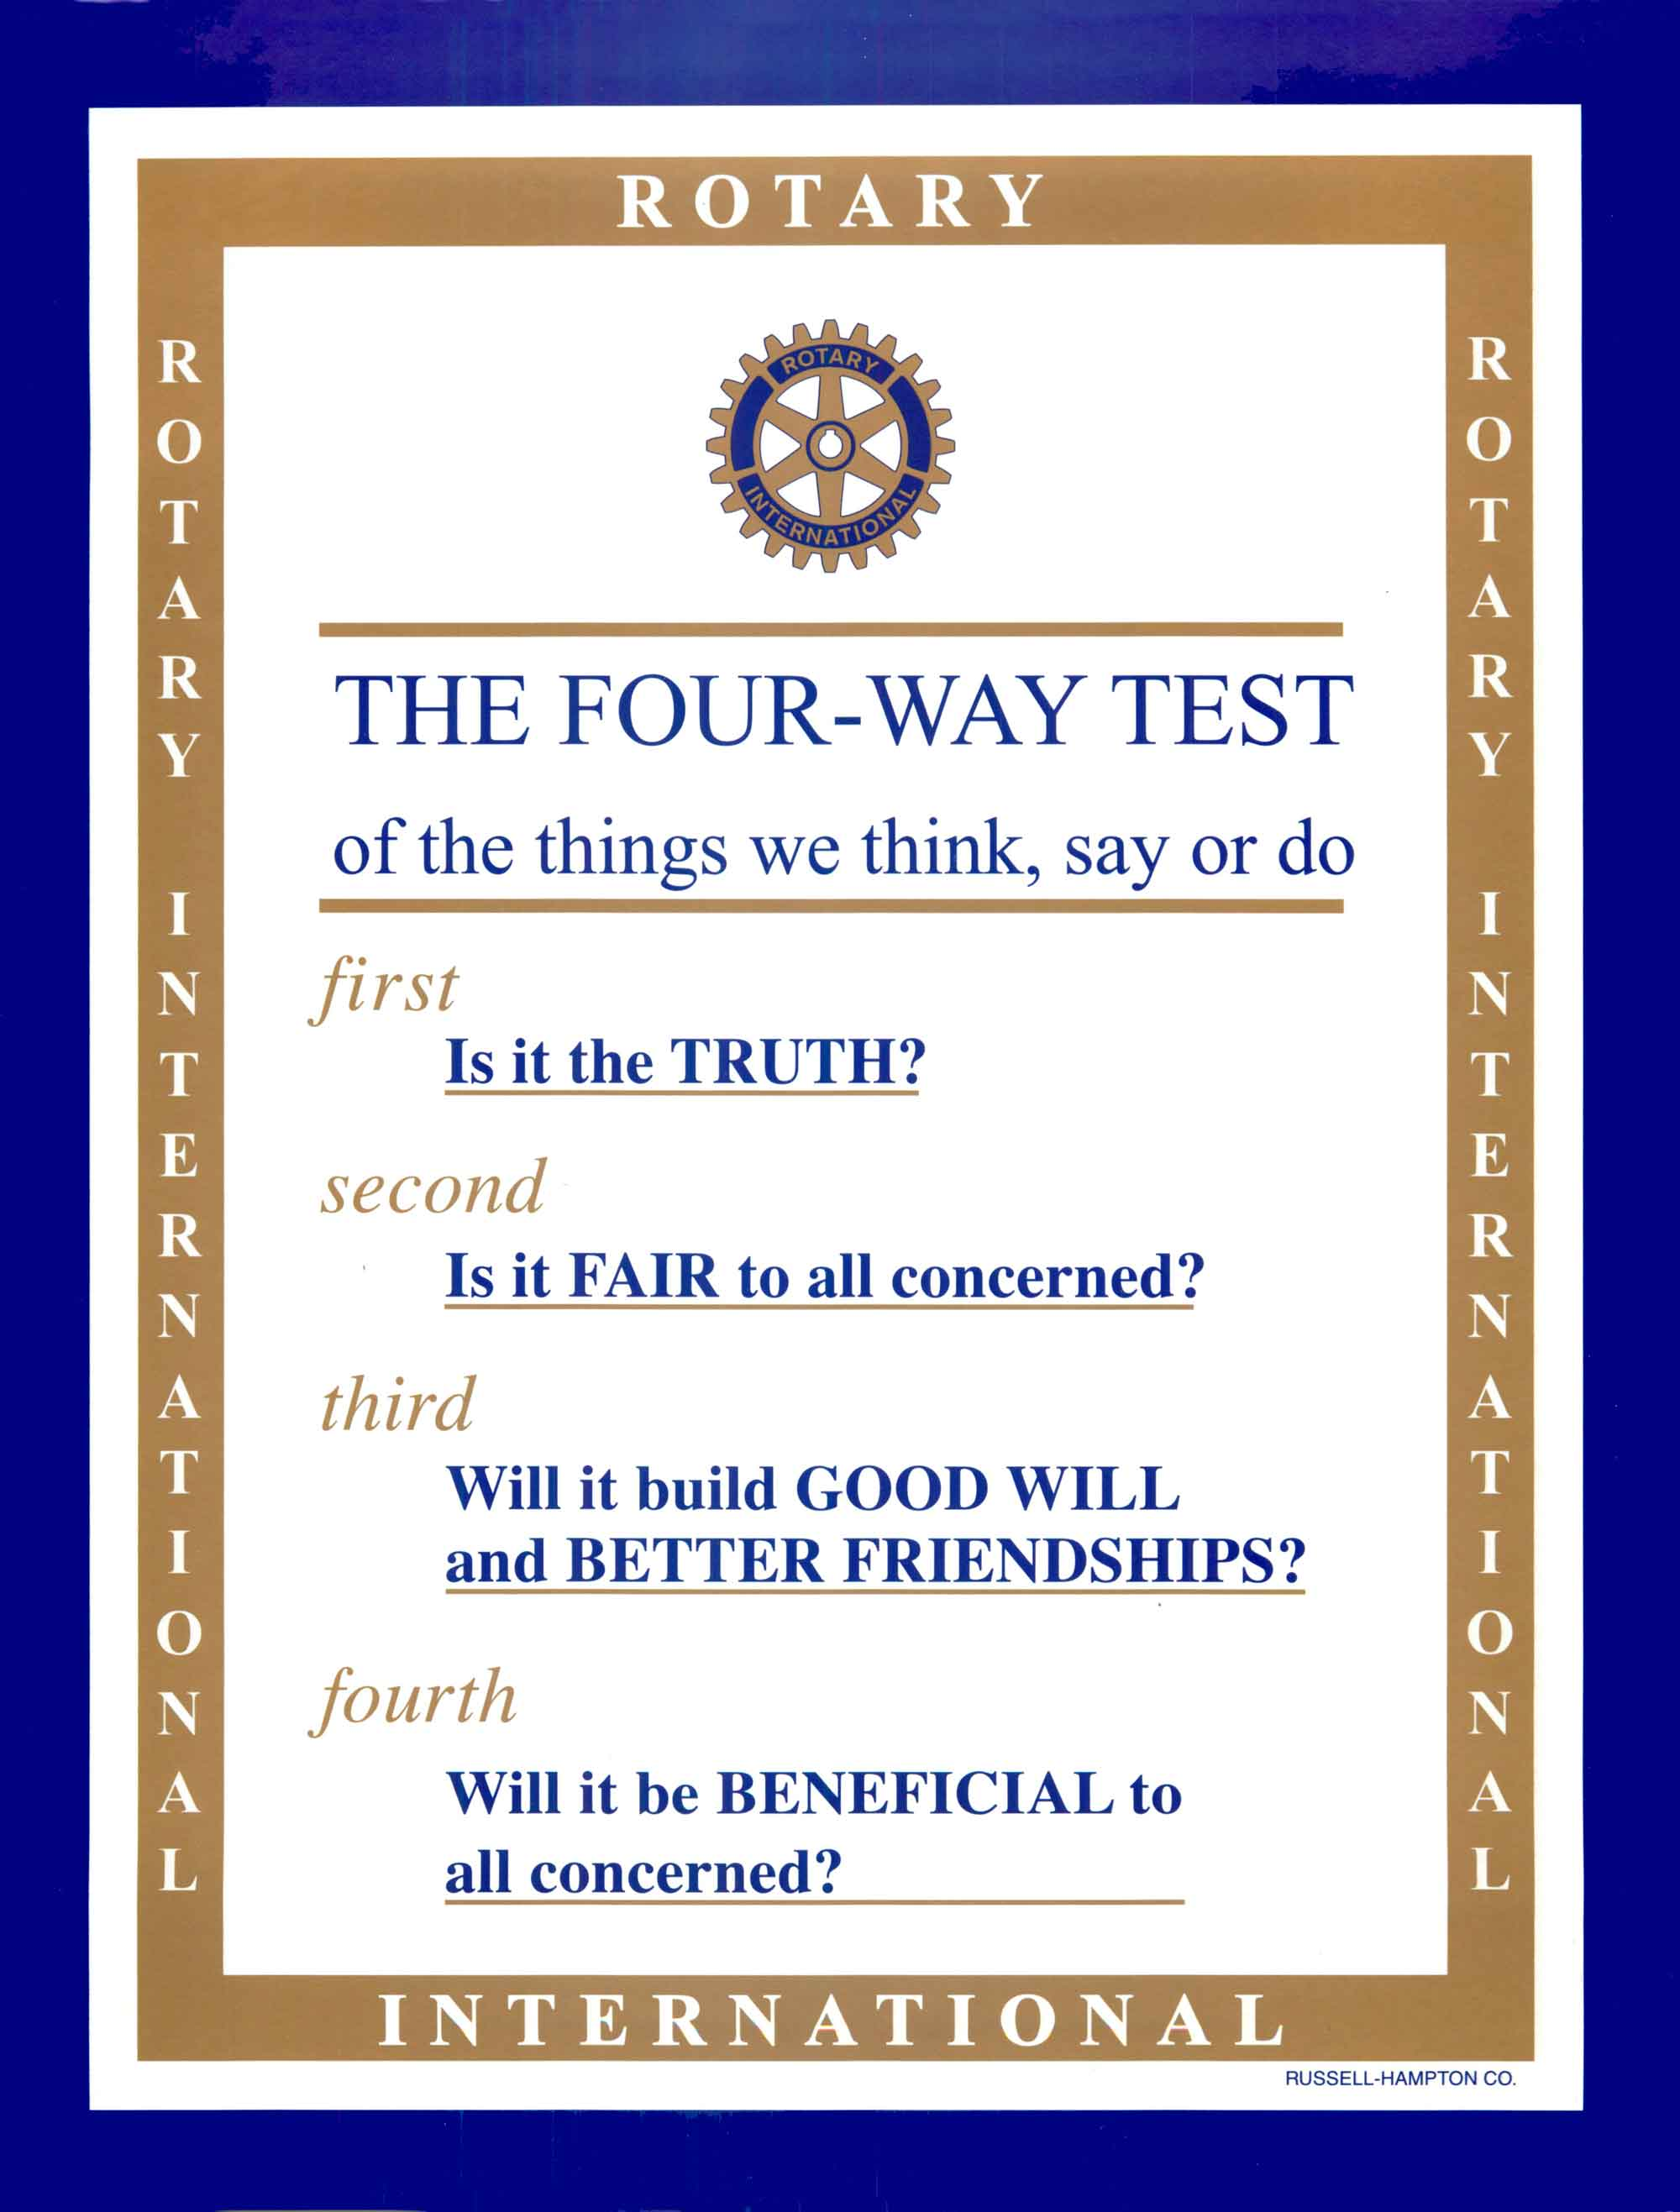 rotary way test essay winner mckenna eisenzimmer the rotary four way test is important because it teaches people how to work together to build a better community good leaders of all ages